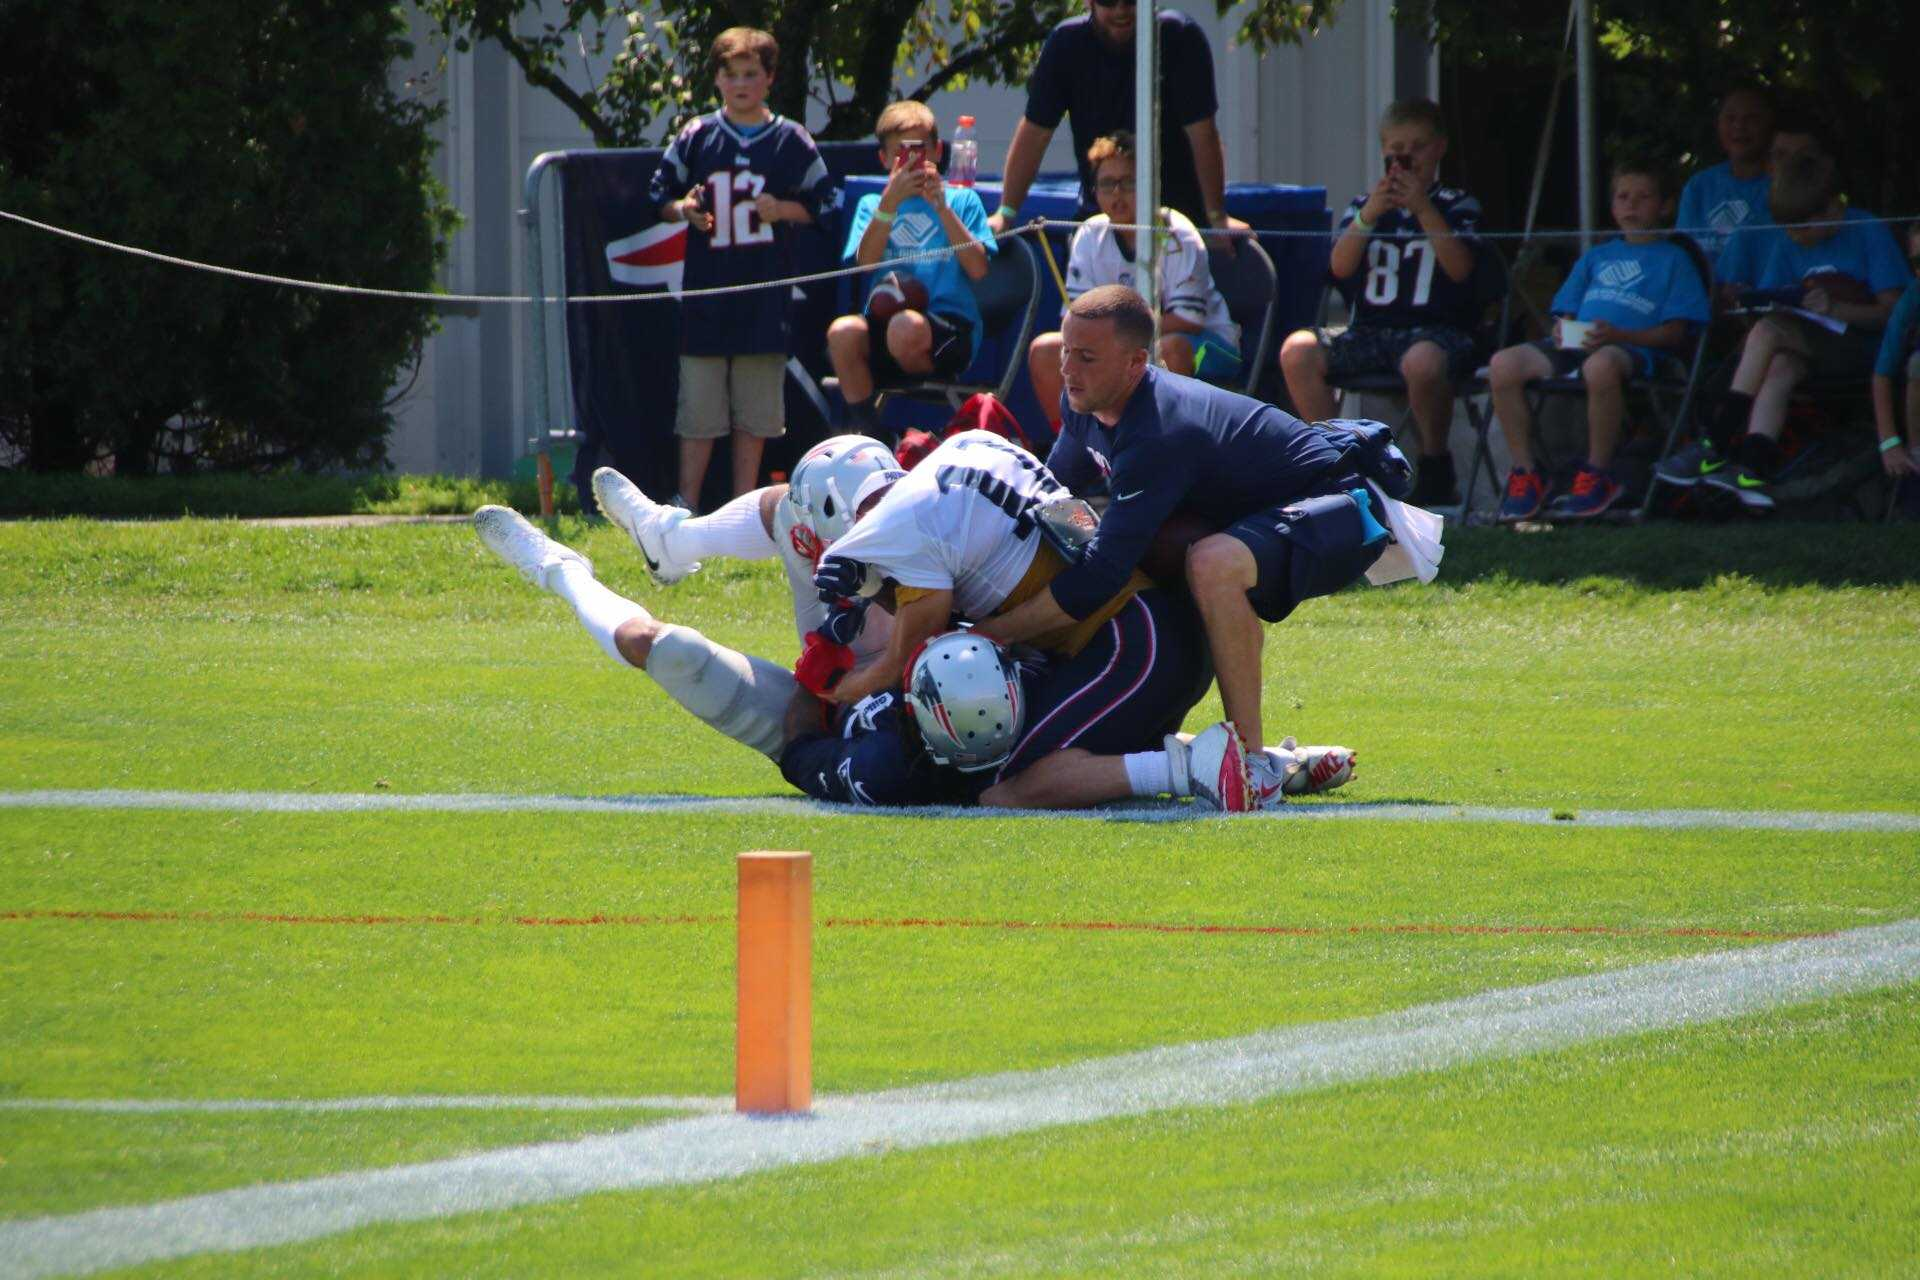 Julian Edelman, Stephon Gilmore tossed from practice